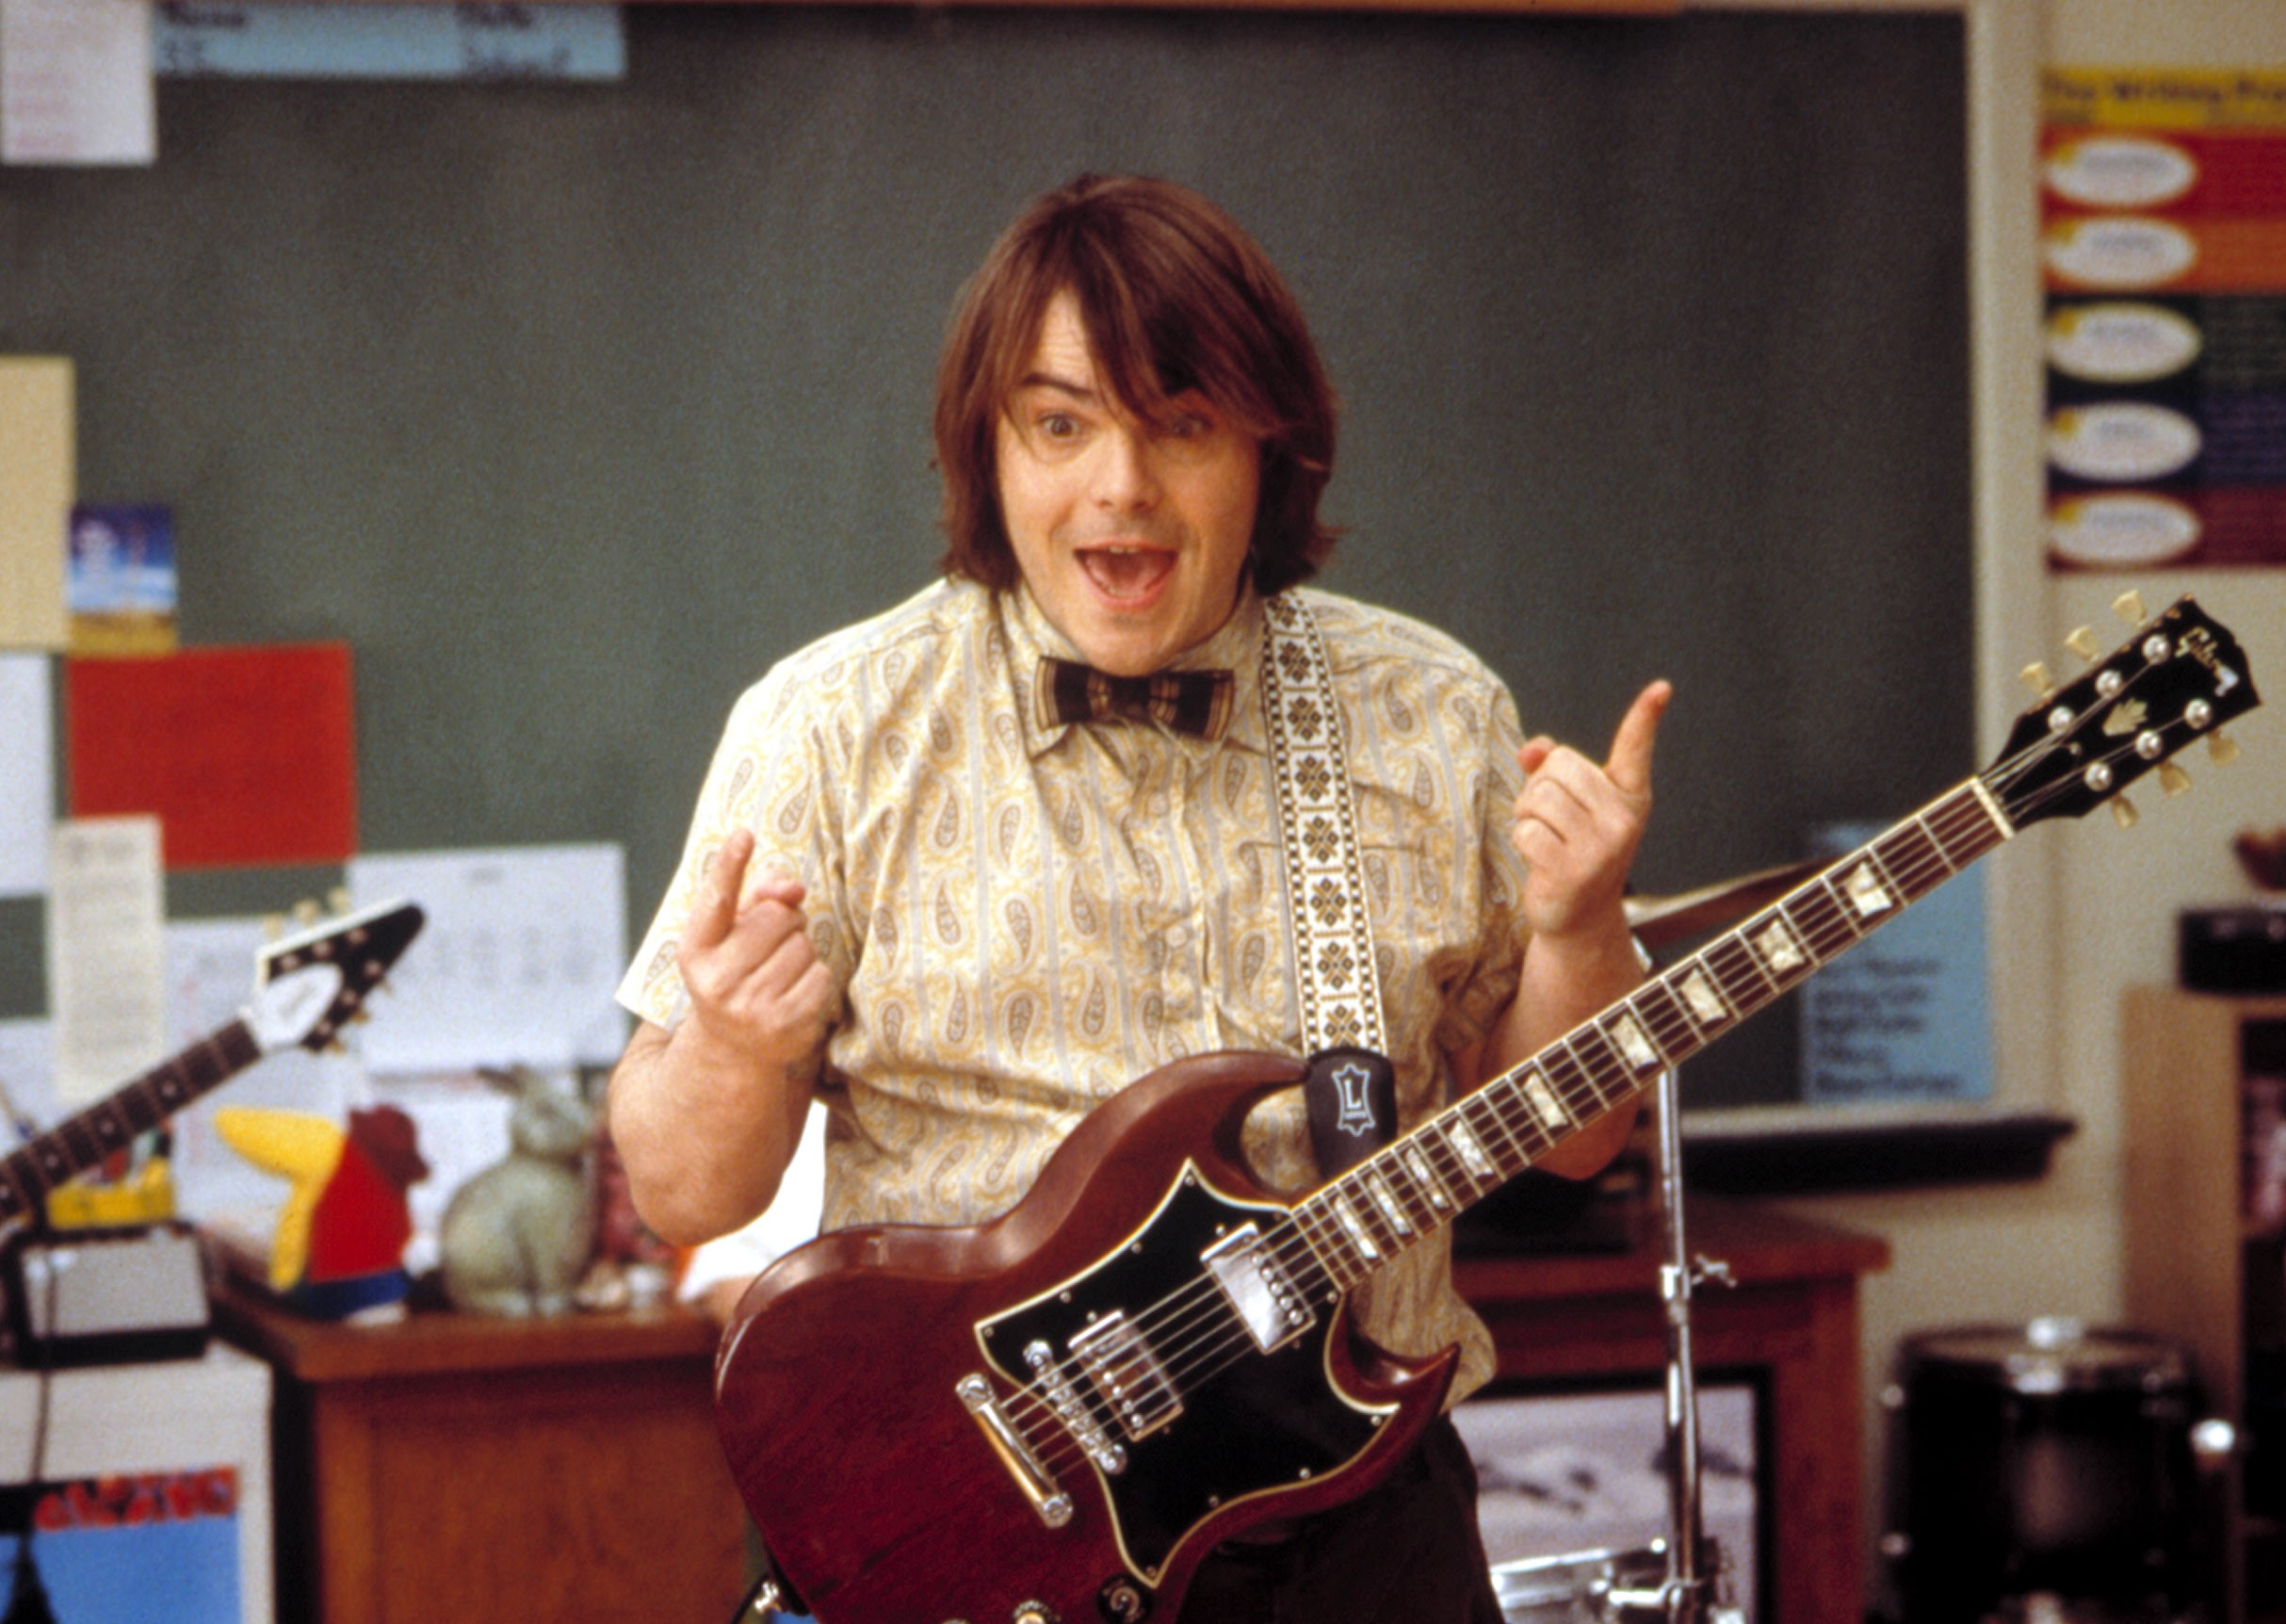 'School of Rock' Musical to Hit Broadway Next Year